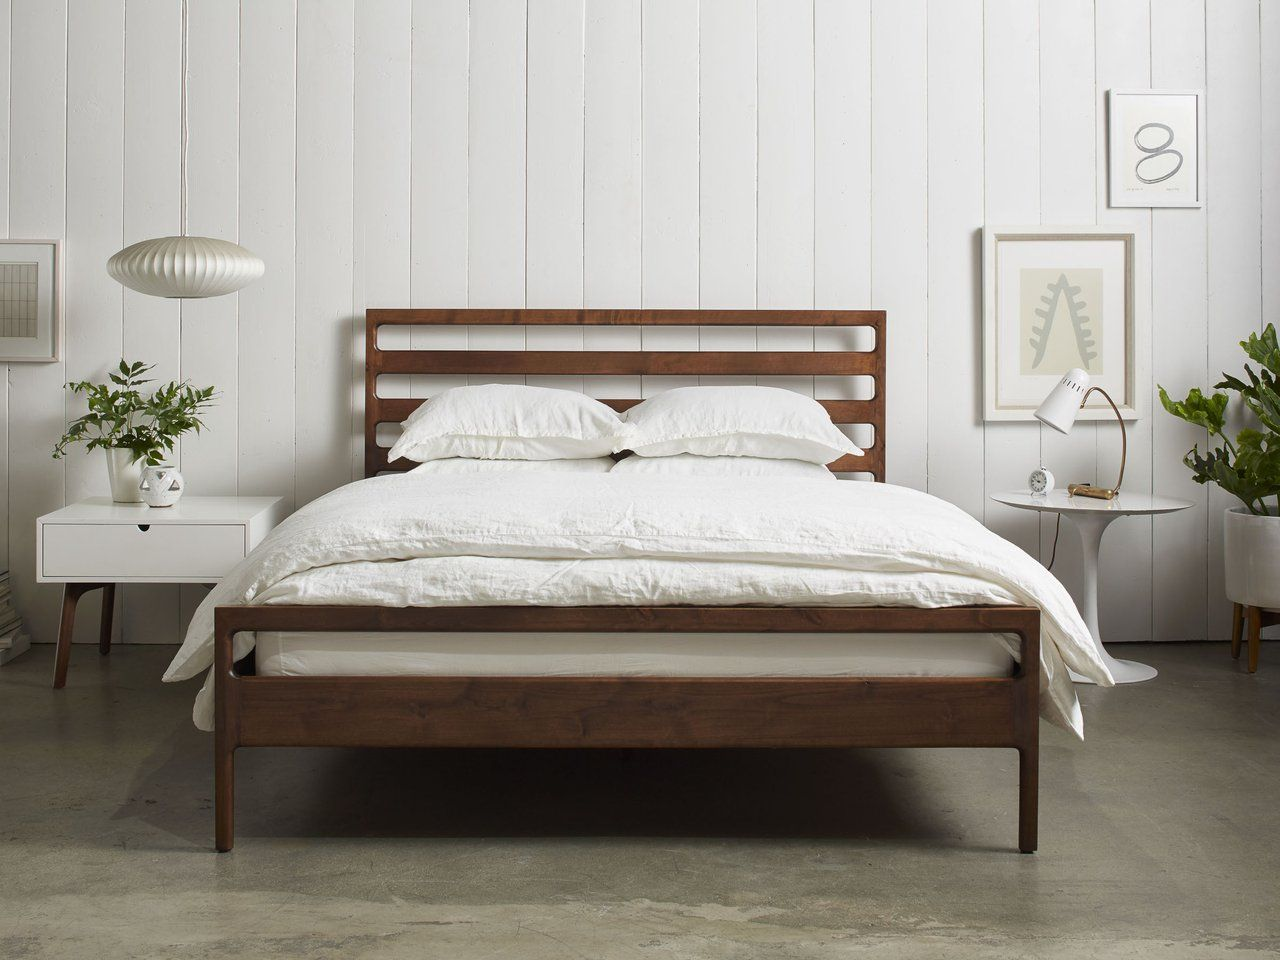 Handmade Wood Bed Frame With Images Minimalist Furniture Furniture Design Wooden Wood Bed Frame